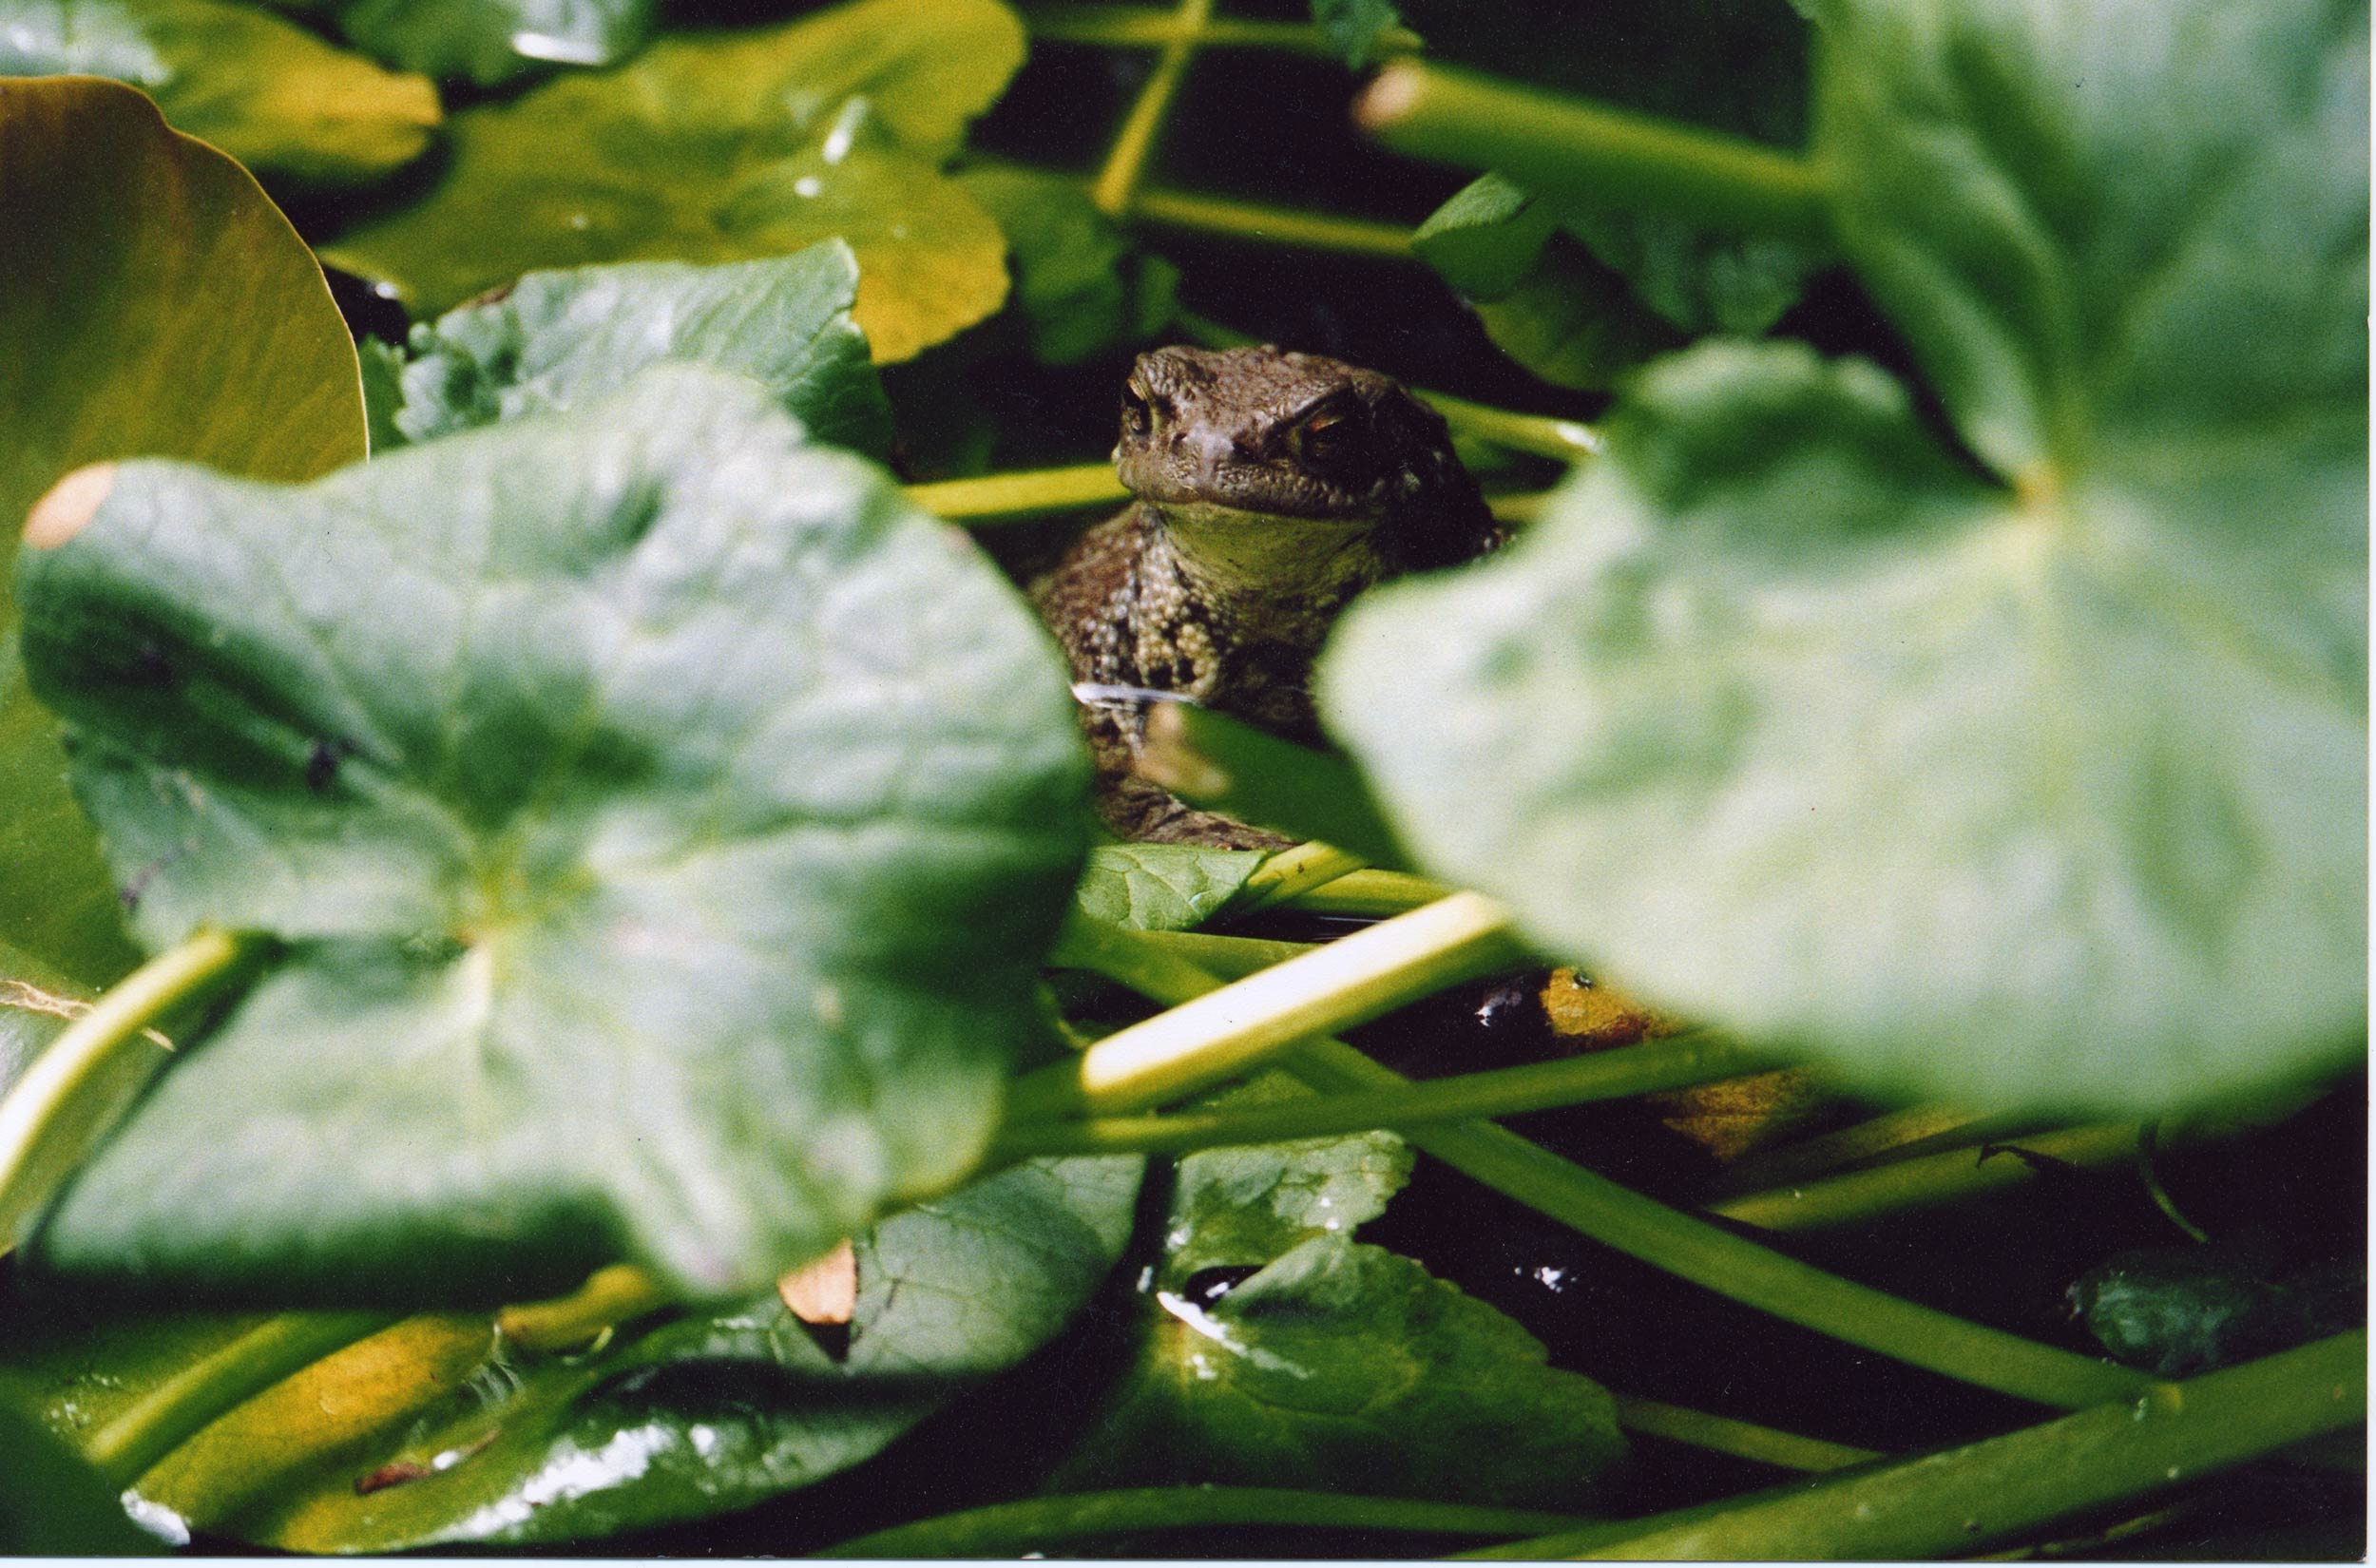 'Ethel' Toad - Nottinghill